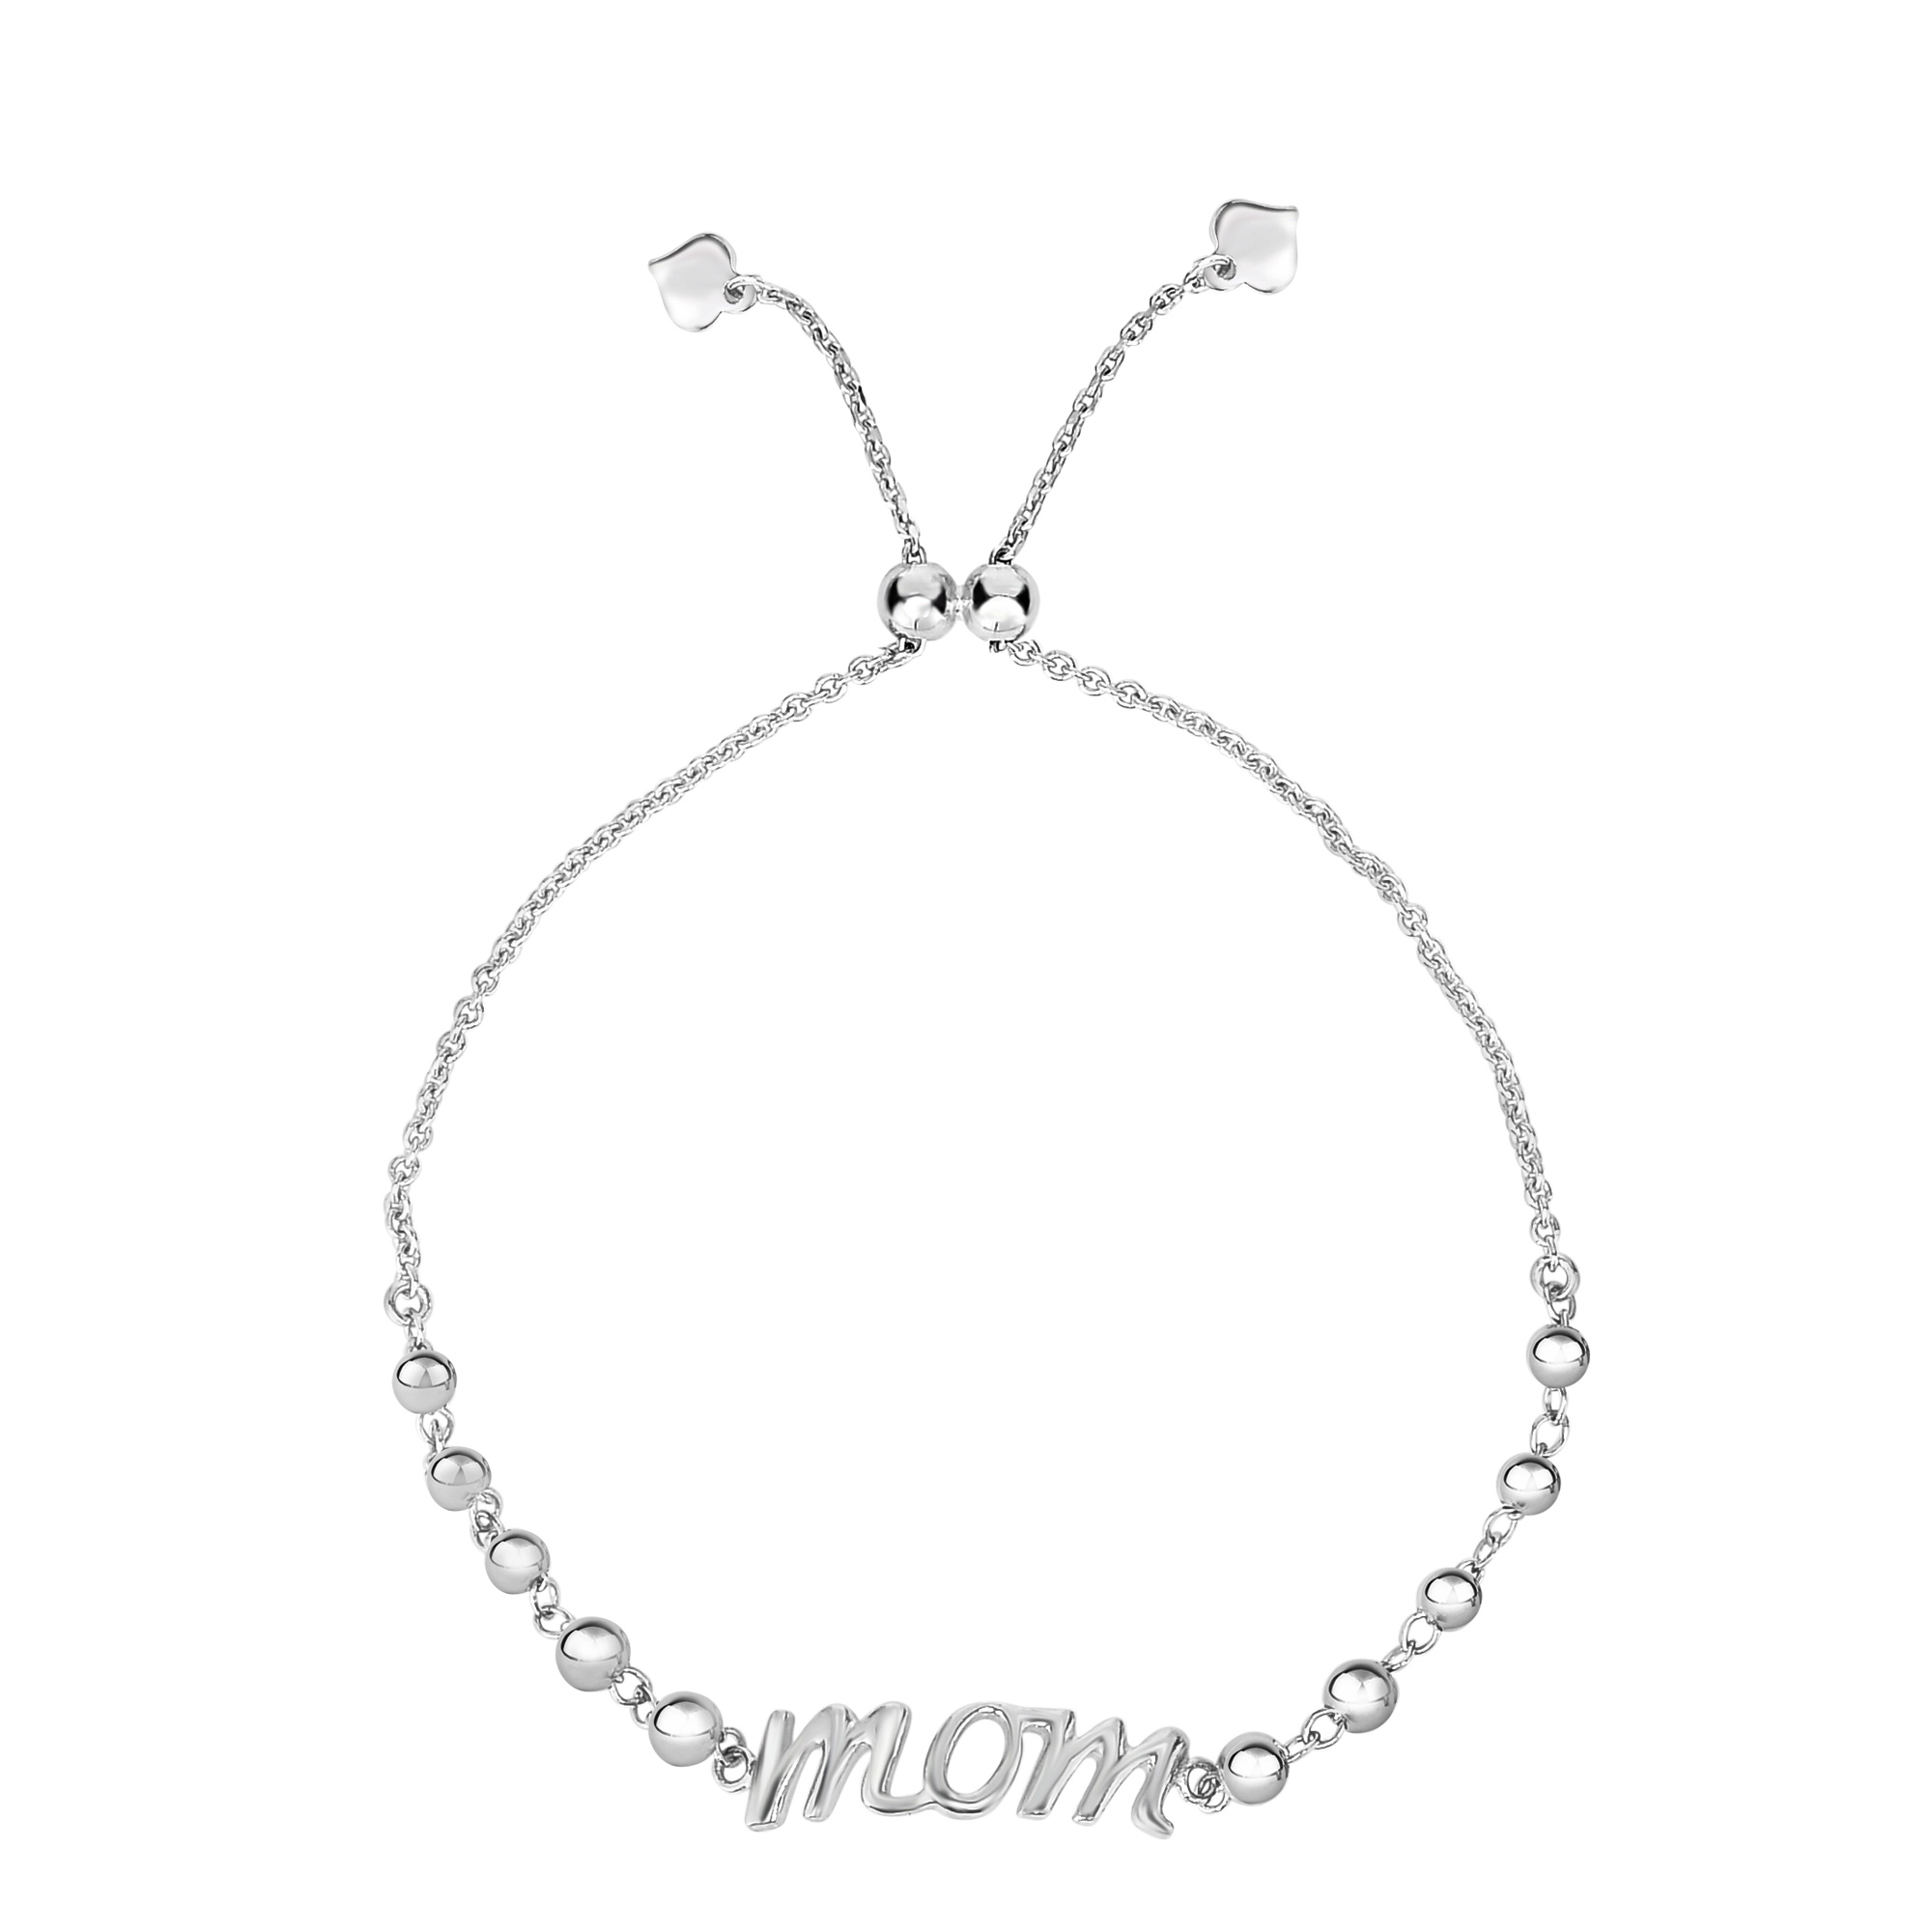 Sterling Silver Mom Theme Adjustable Bolo Friendship Bracelet , 9.25  Designed for today's fast-moving, contemporary woman, the Friendship bracelets are smart, stylish and easy to wear. Meticulously executed in high quality Rhodium plated sterling silver, these iconic bracelets are easily adjusted to fit any wrist. The Adjustable sliding closure allows you to go from 9.25 inches length to as small as allowed by the design.  Each unique style of our Friendship collection looks beautiful worn as one piece alone or stacked with multiple styles for a layered and modern look. The bracelet comes in an elegant jewelry gift box, perfect for any gift giving occasion.